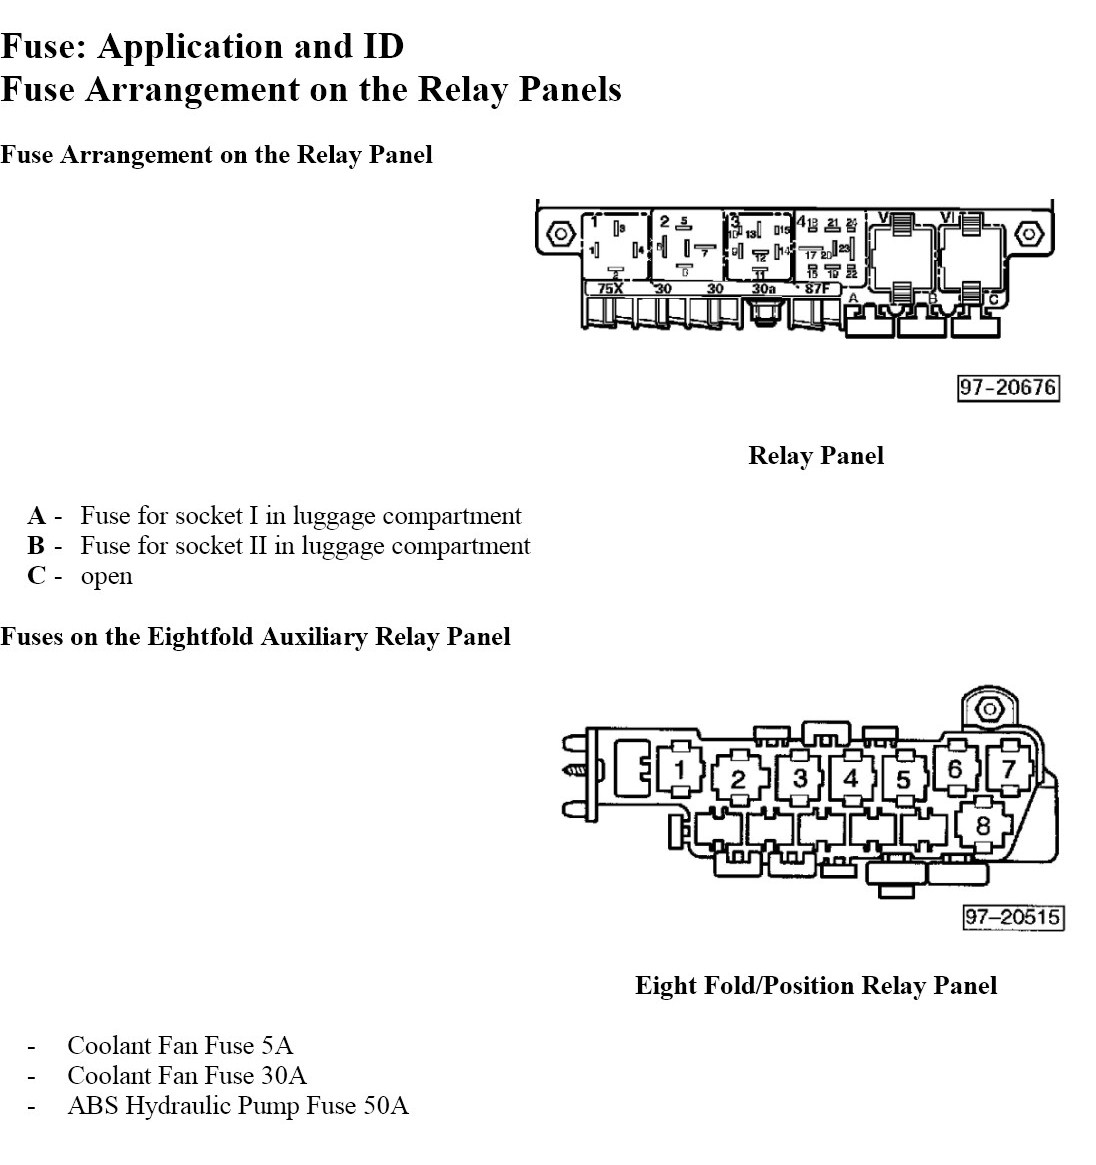 how do i get a fuse box diagram for a 2003 passat rh justanswer com 2003 volkswagen passat fuse box 2004 passat fuse box location